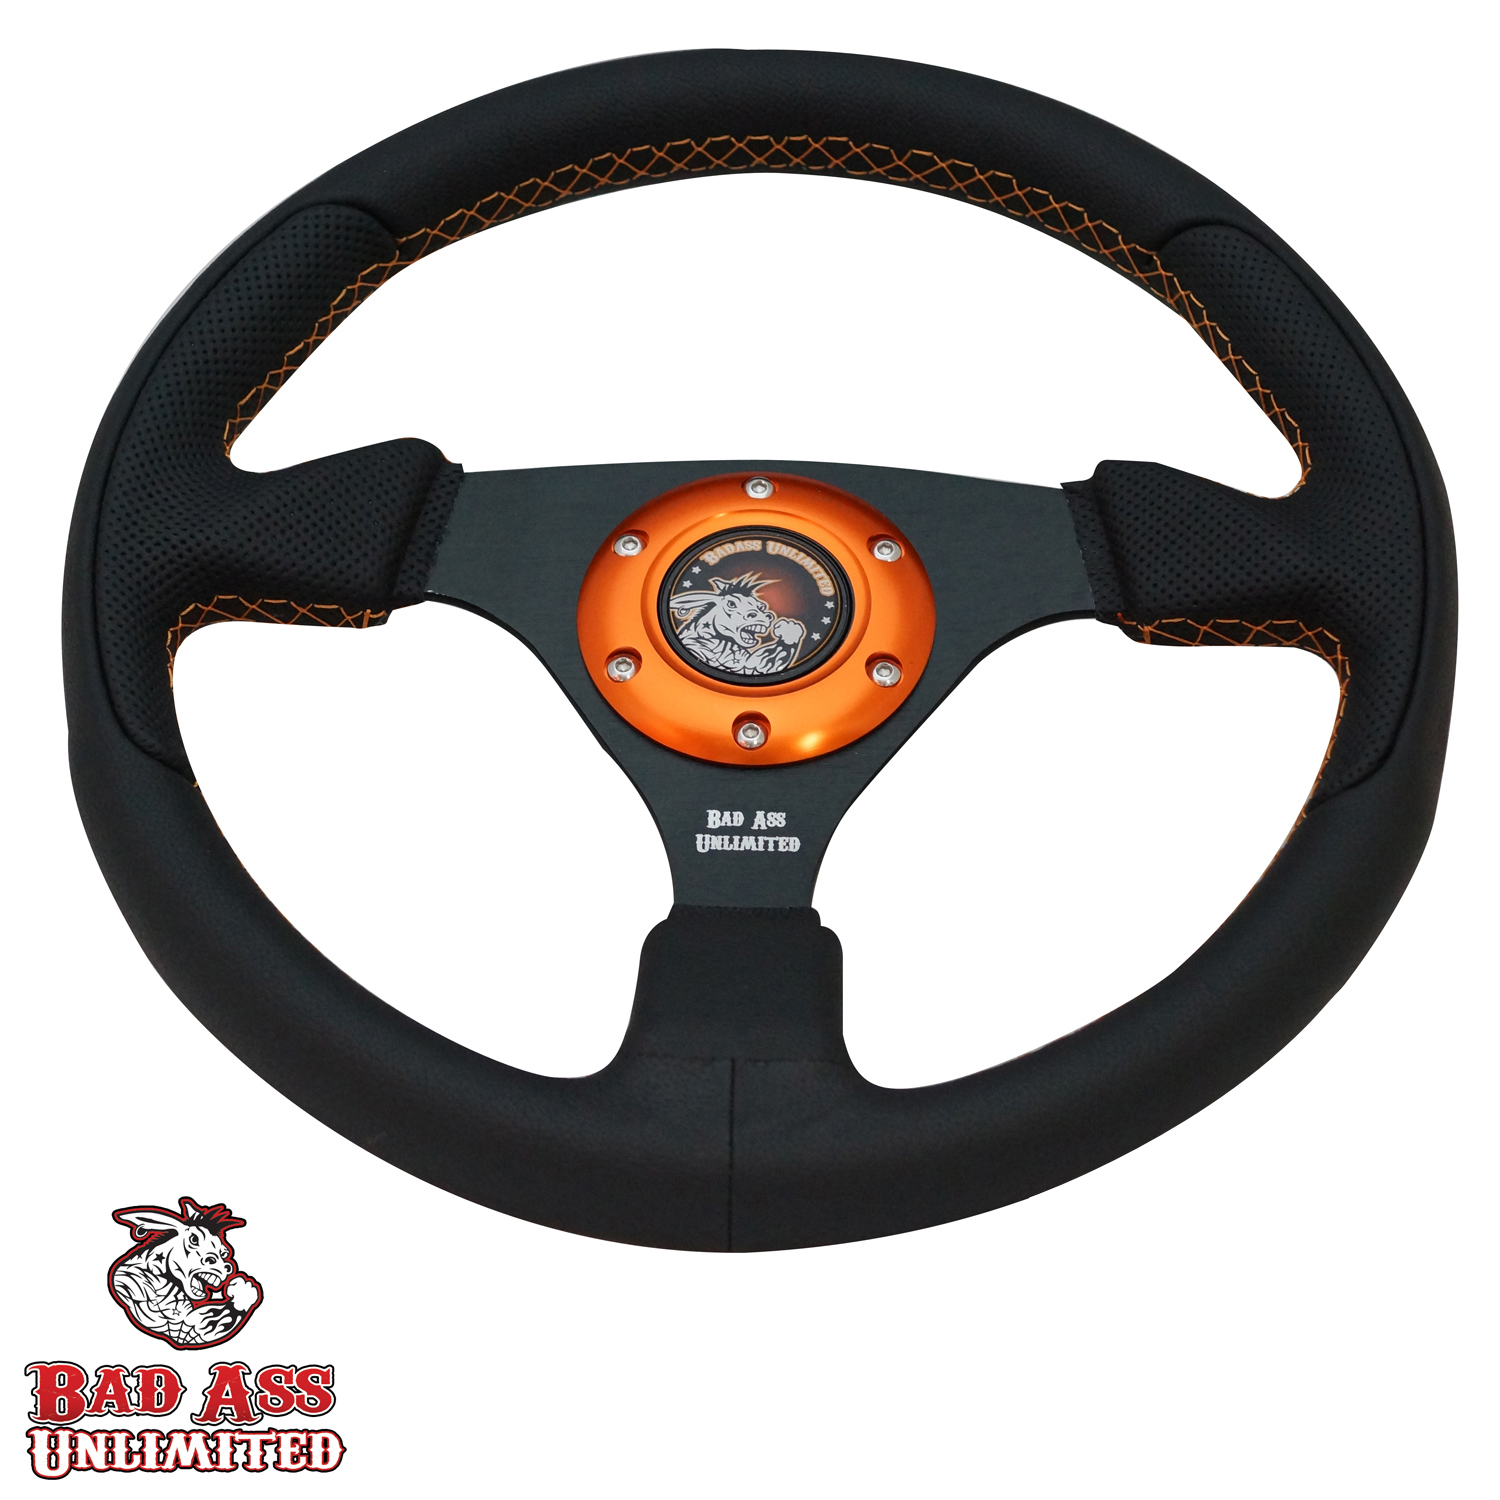 Steering wheel photo